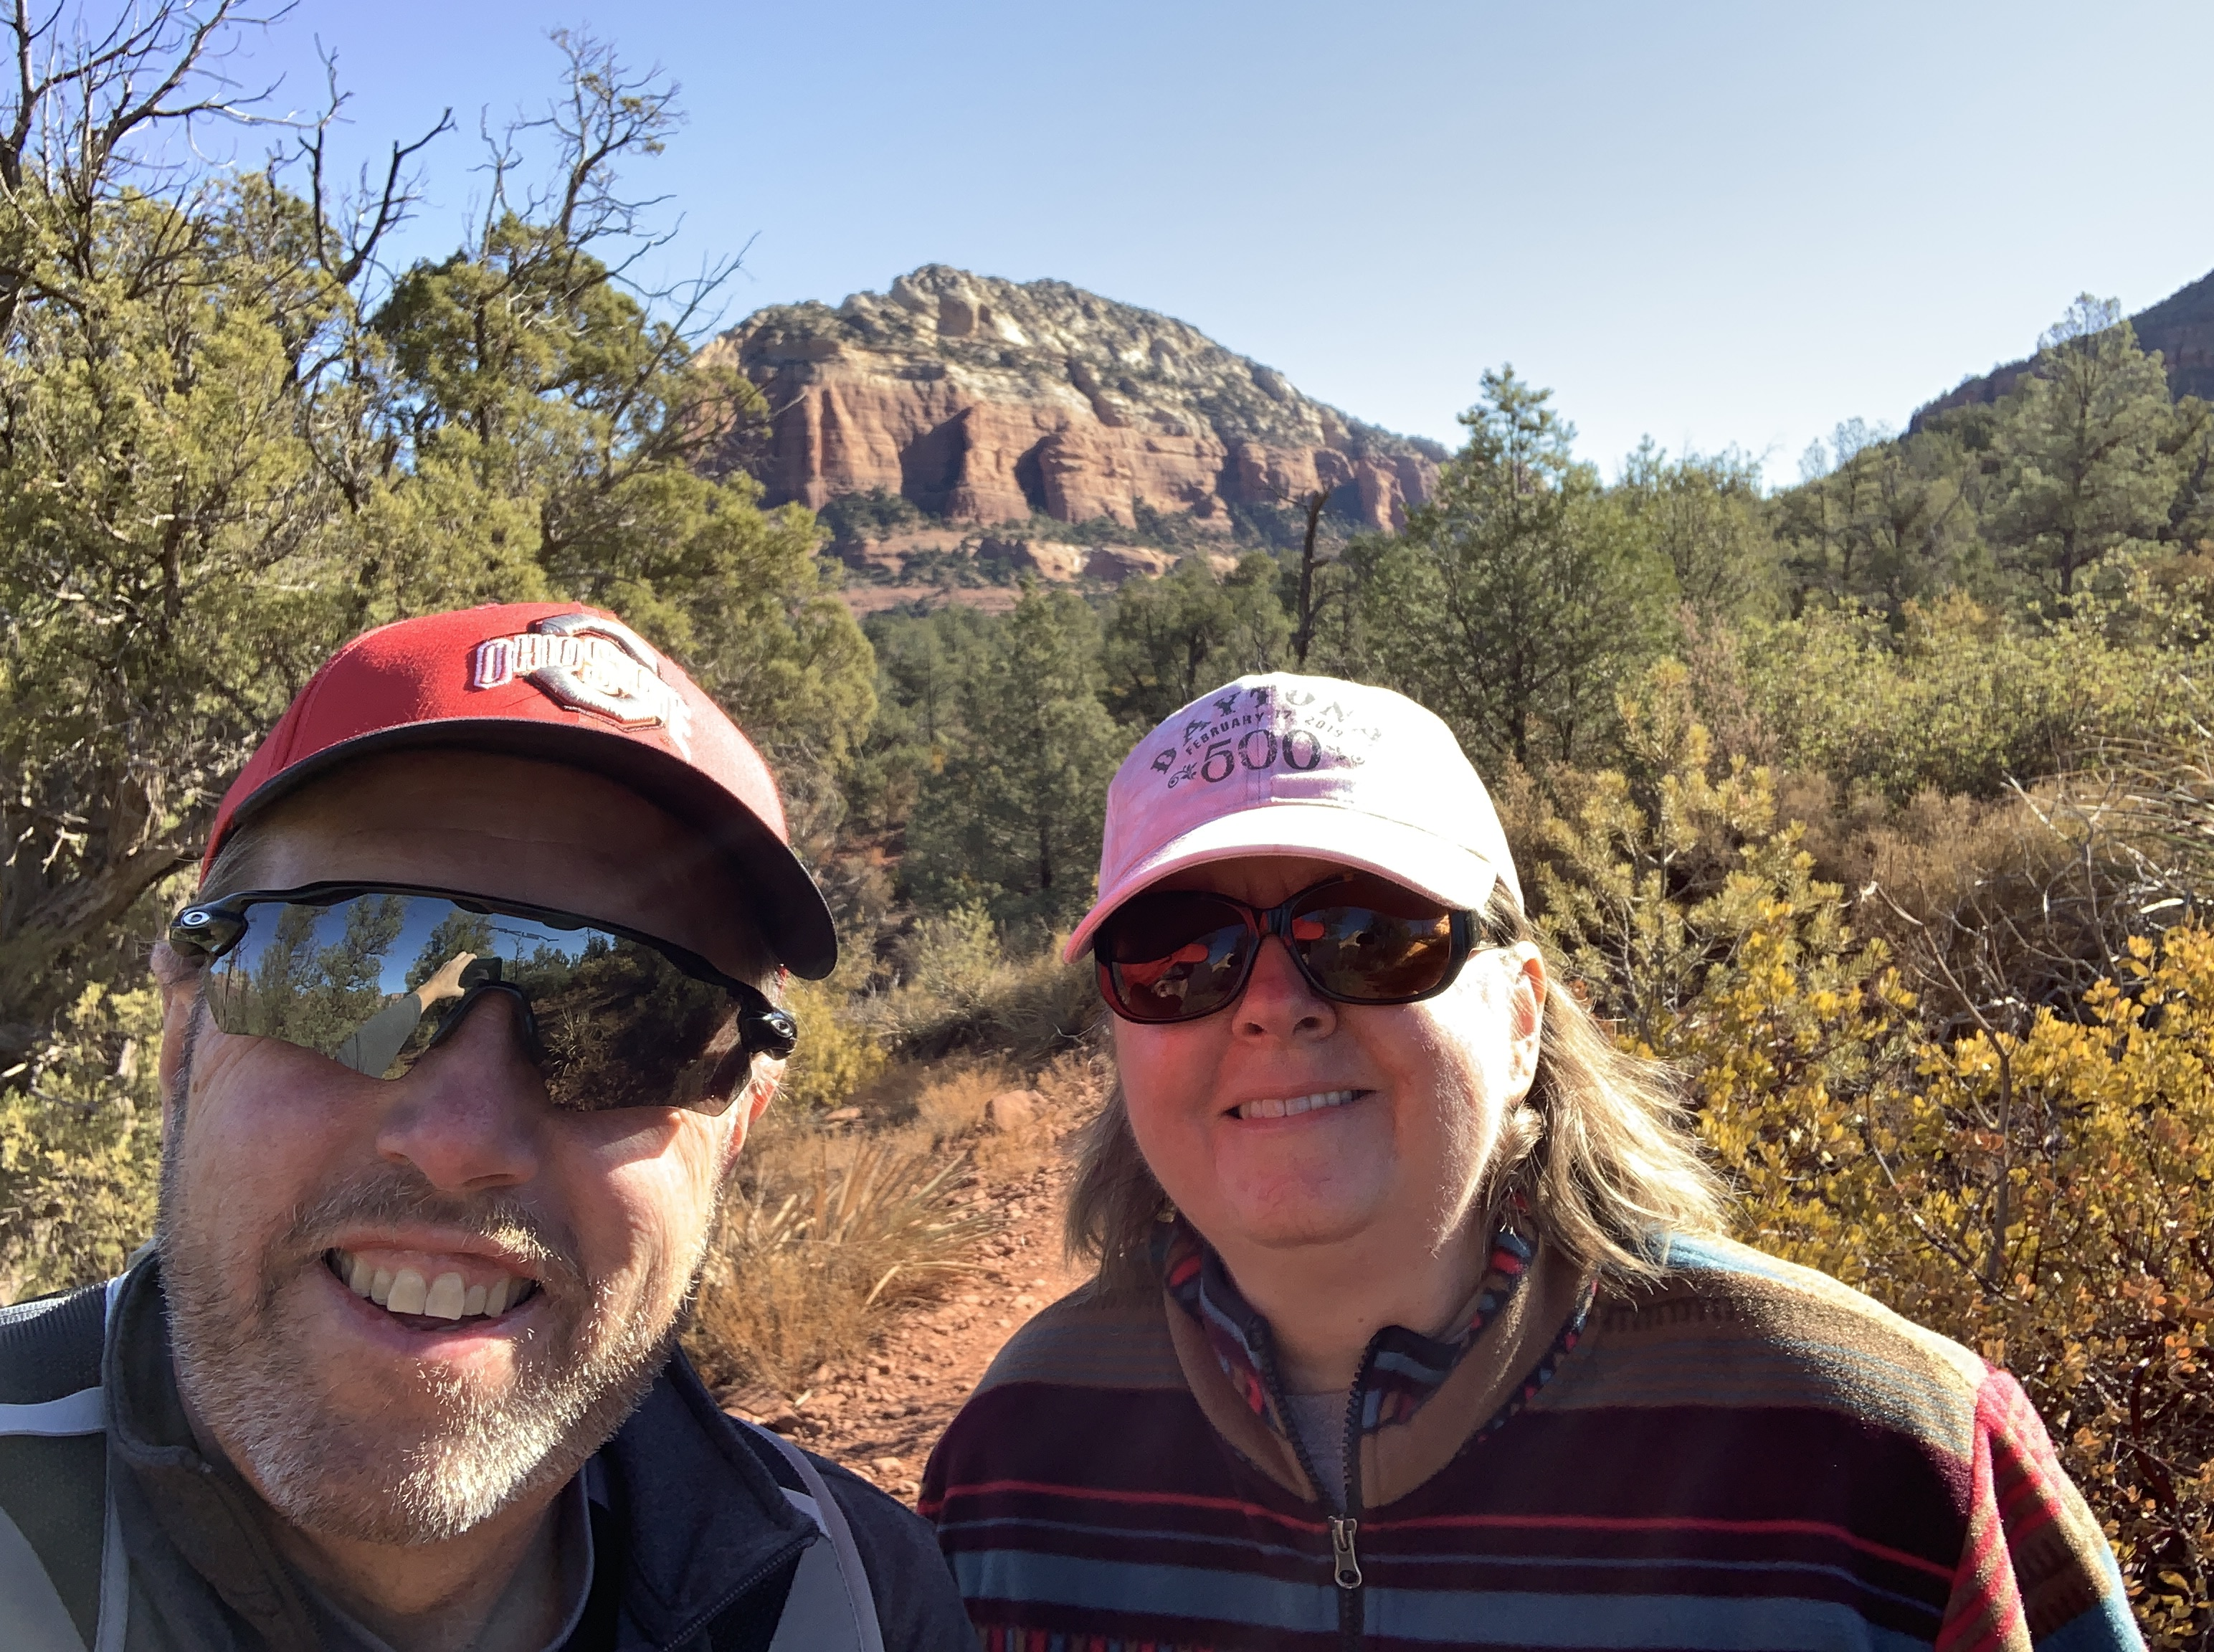 Arizona – Hikes of Sedona